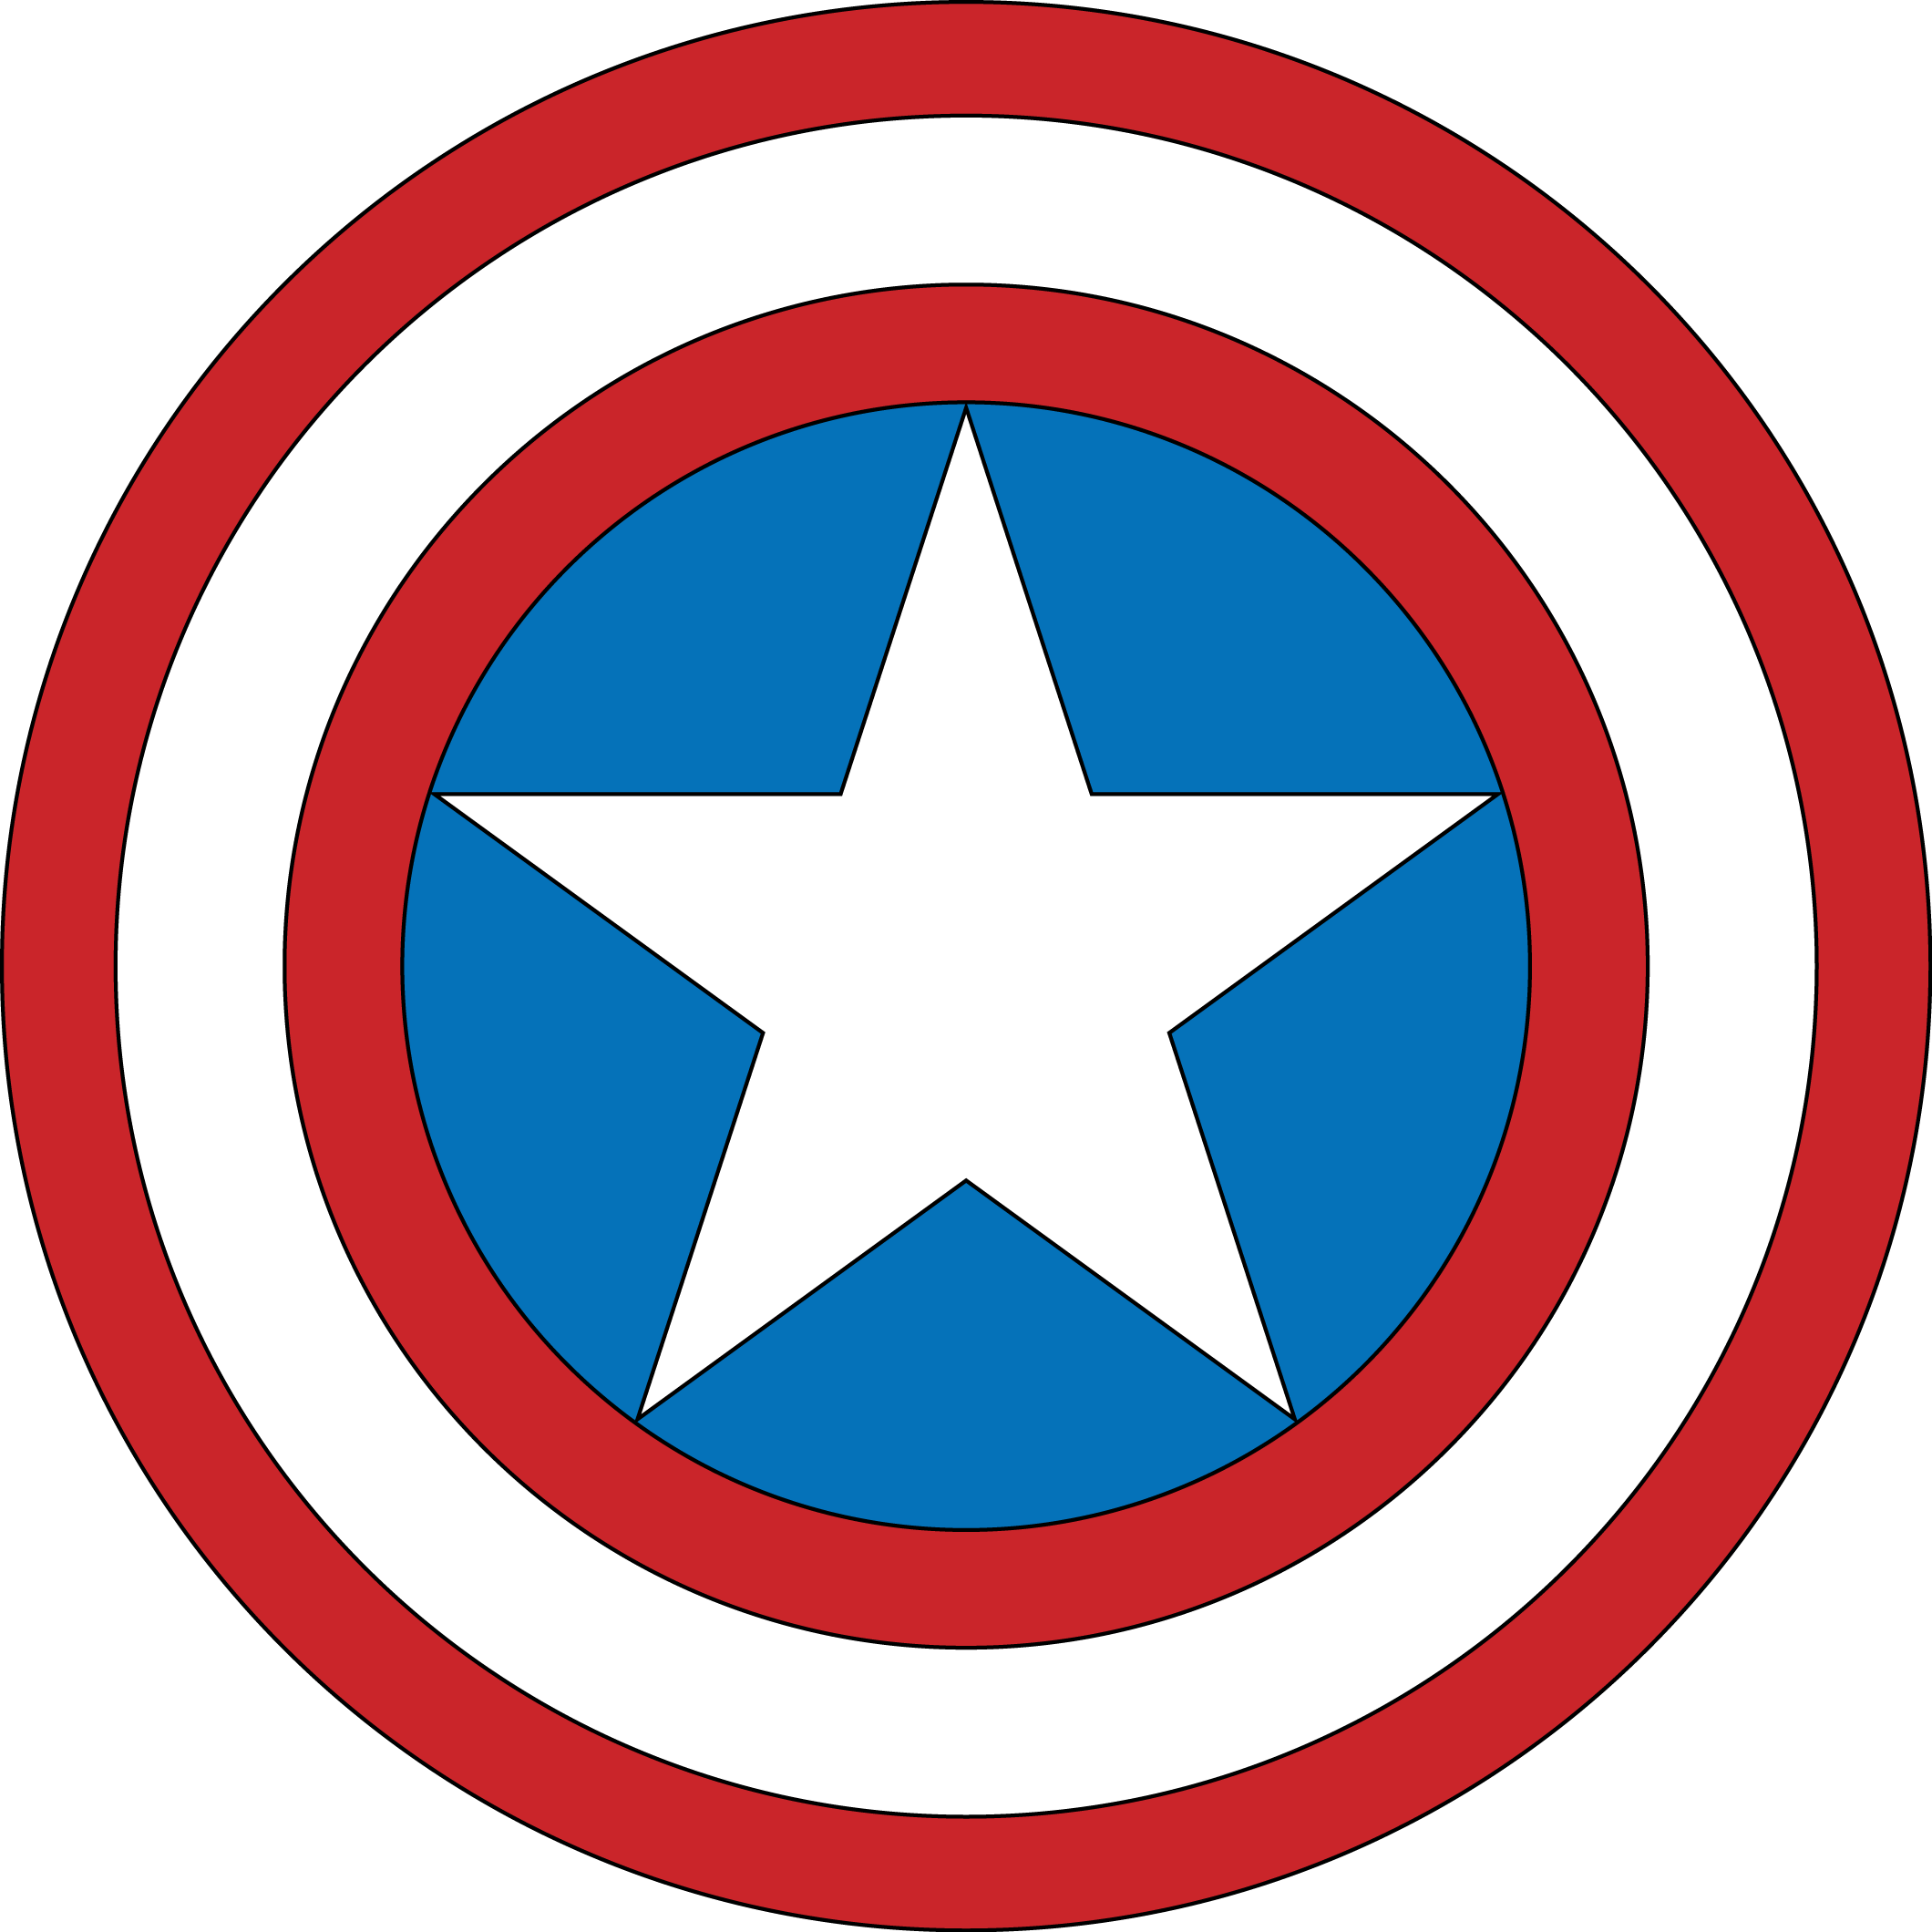 Logo capitan america png. Stay protected and ready